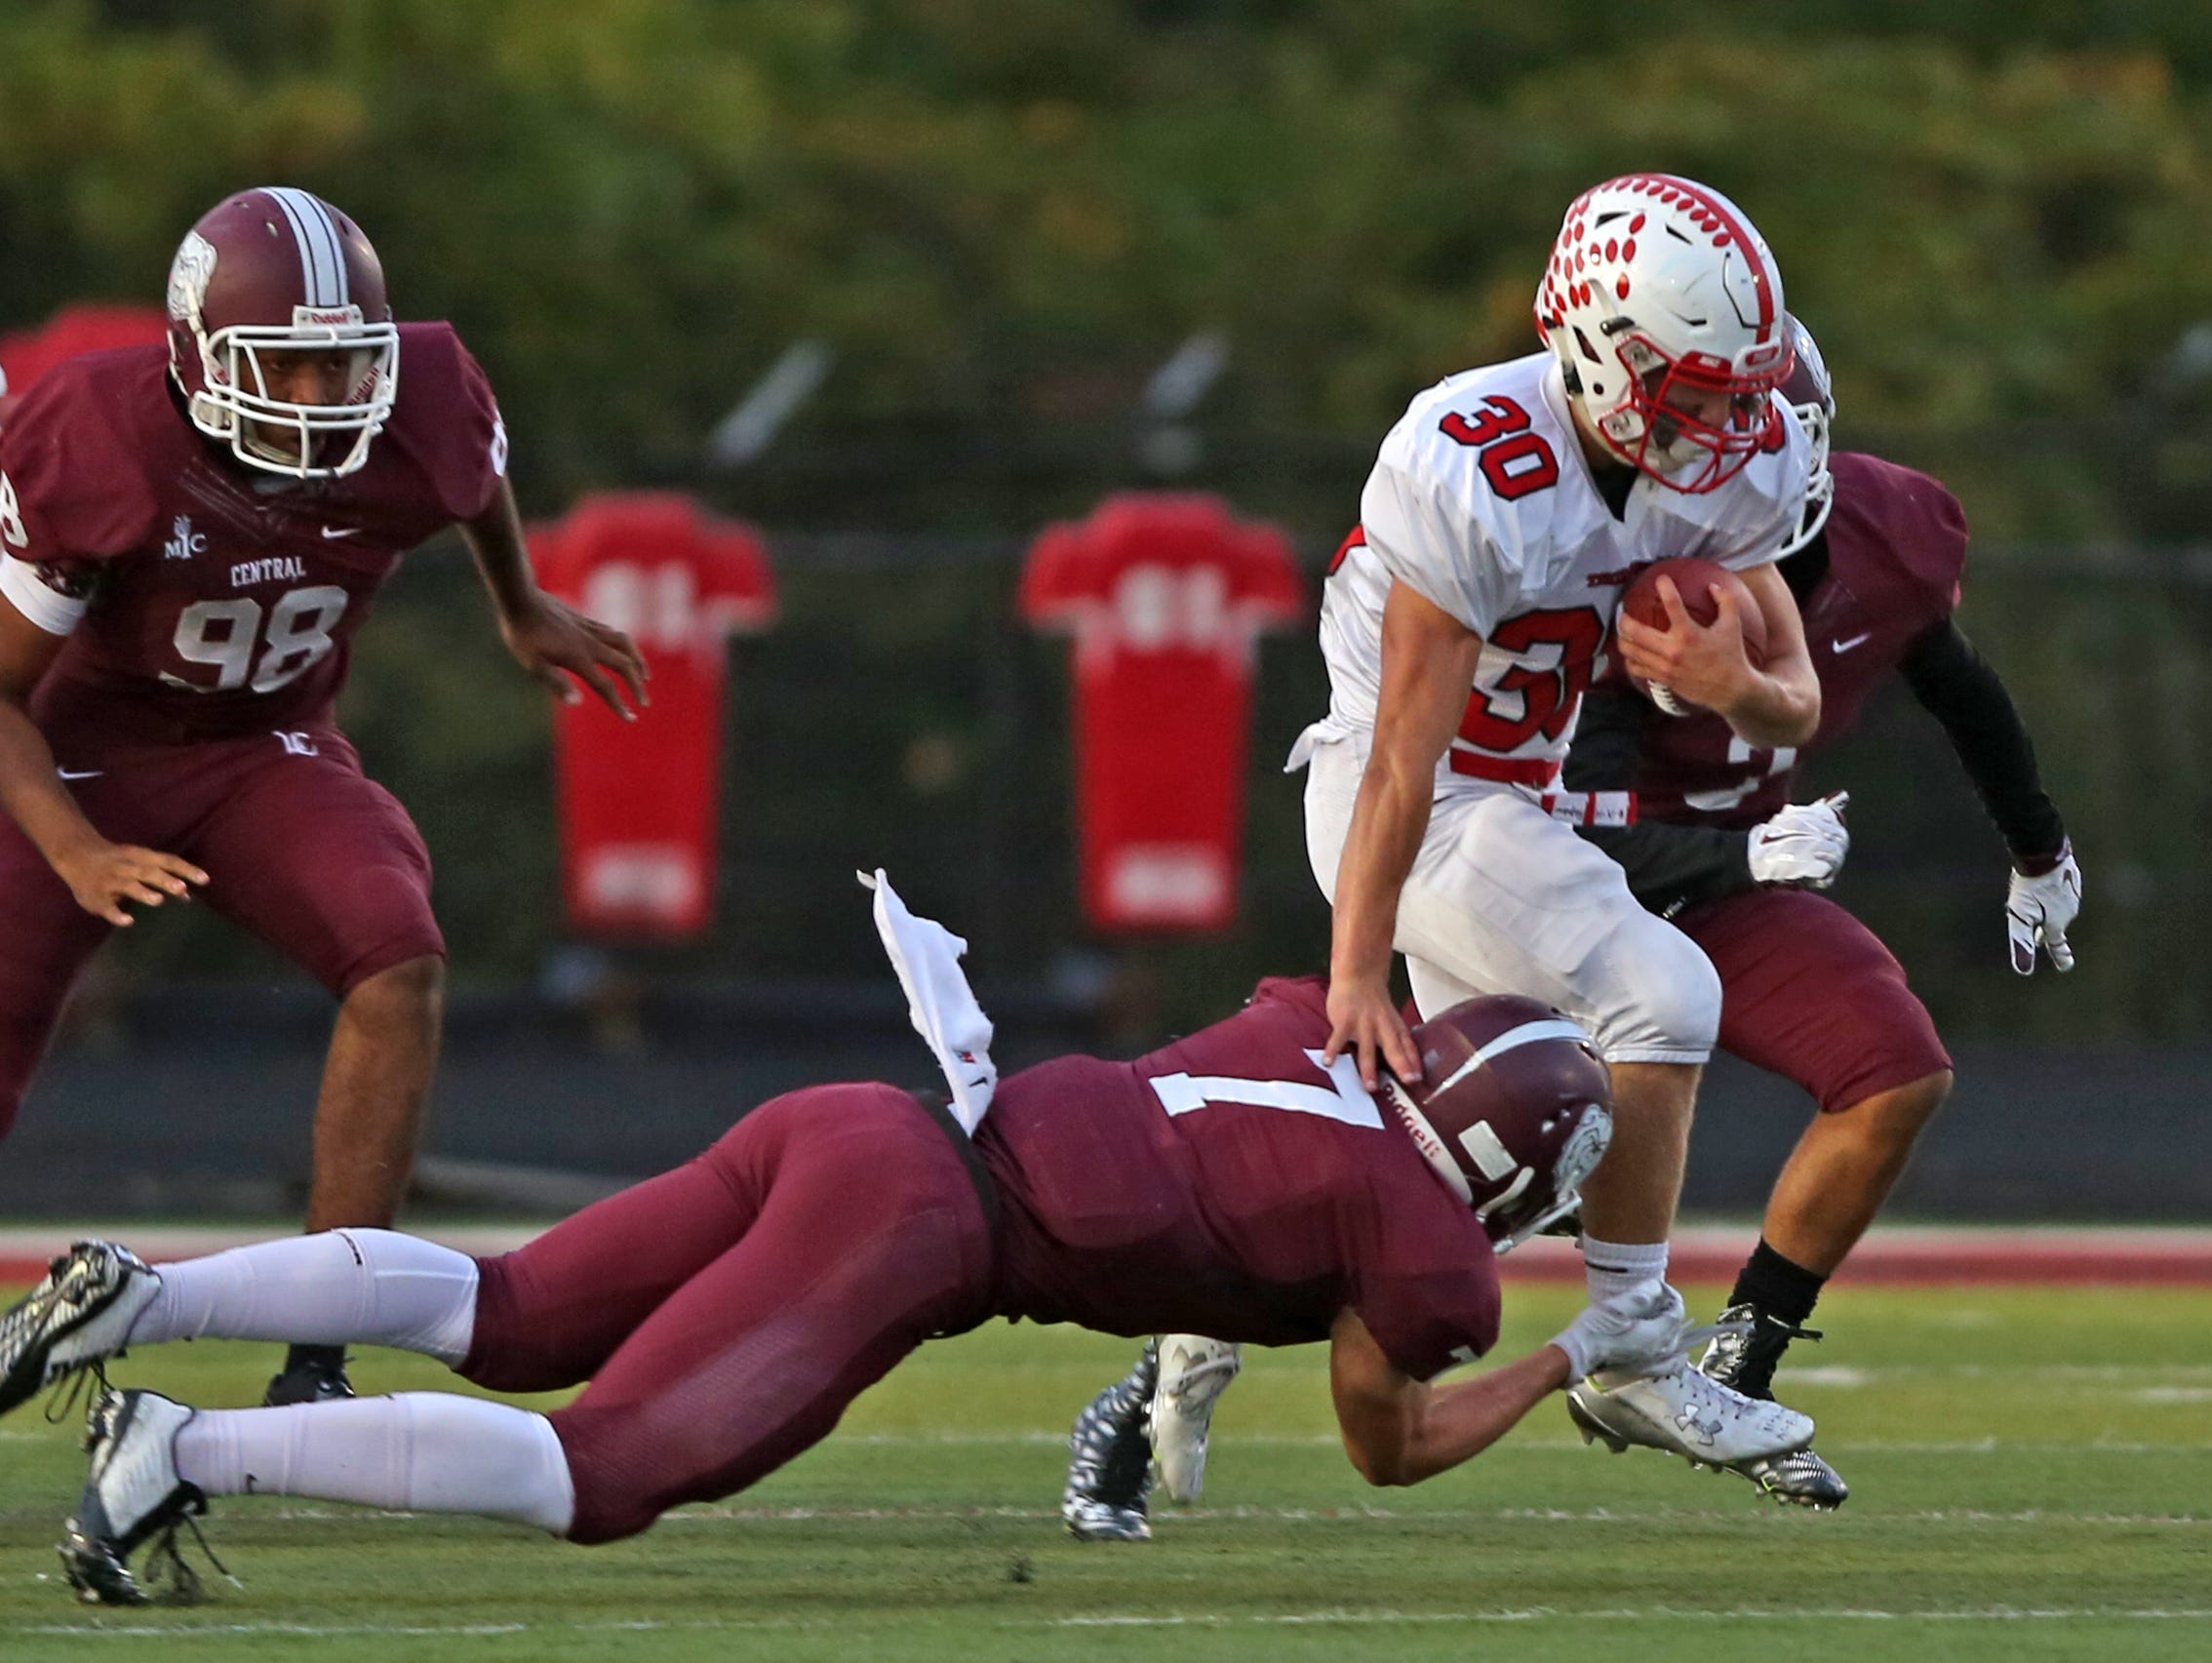 Center Grove Titus McCoy moves pass Lawrence Central defense including LC #7 Michael Tutsie in first half action during the Center Grove at Lawrence Central football game, Friday, September 25, 2015. Center Grove won 44-26.